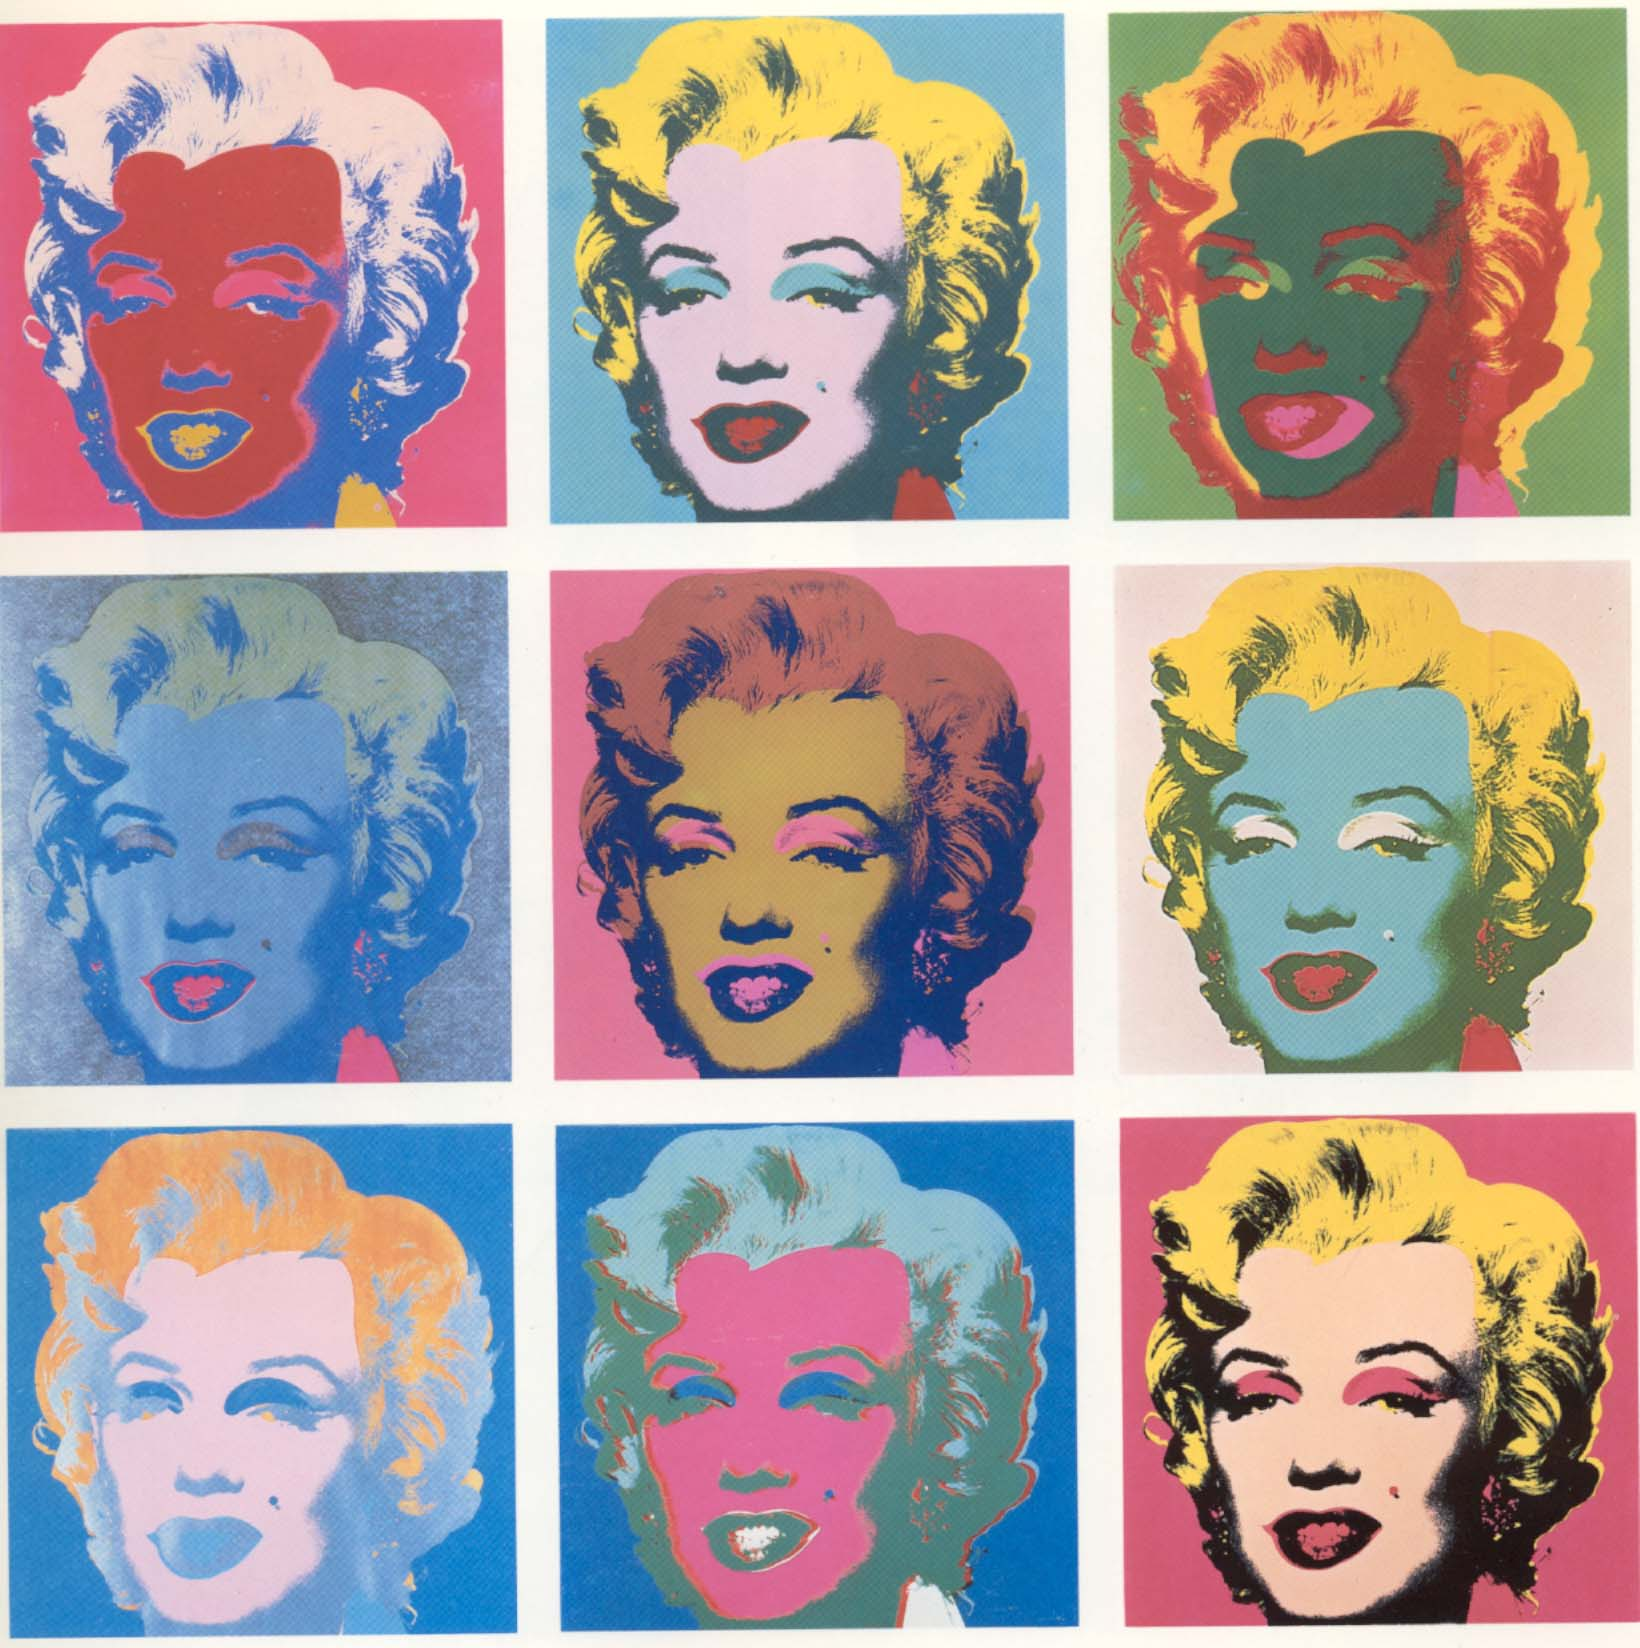 Andy Warhol Andy Warhol Desktop Wallpapers Hd Fine Art Pop Art